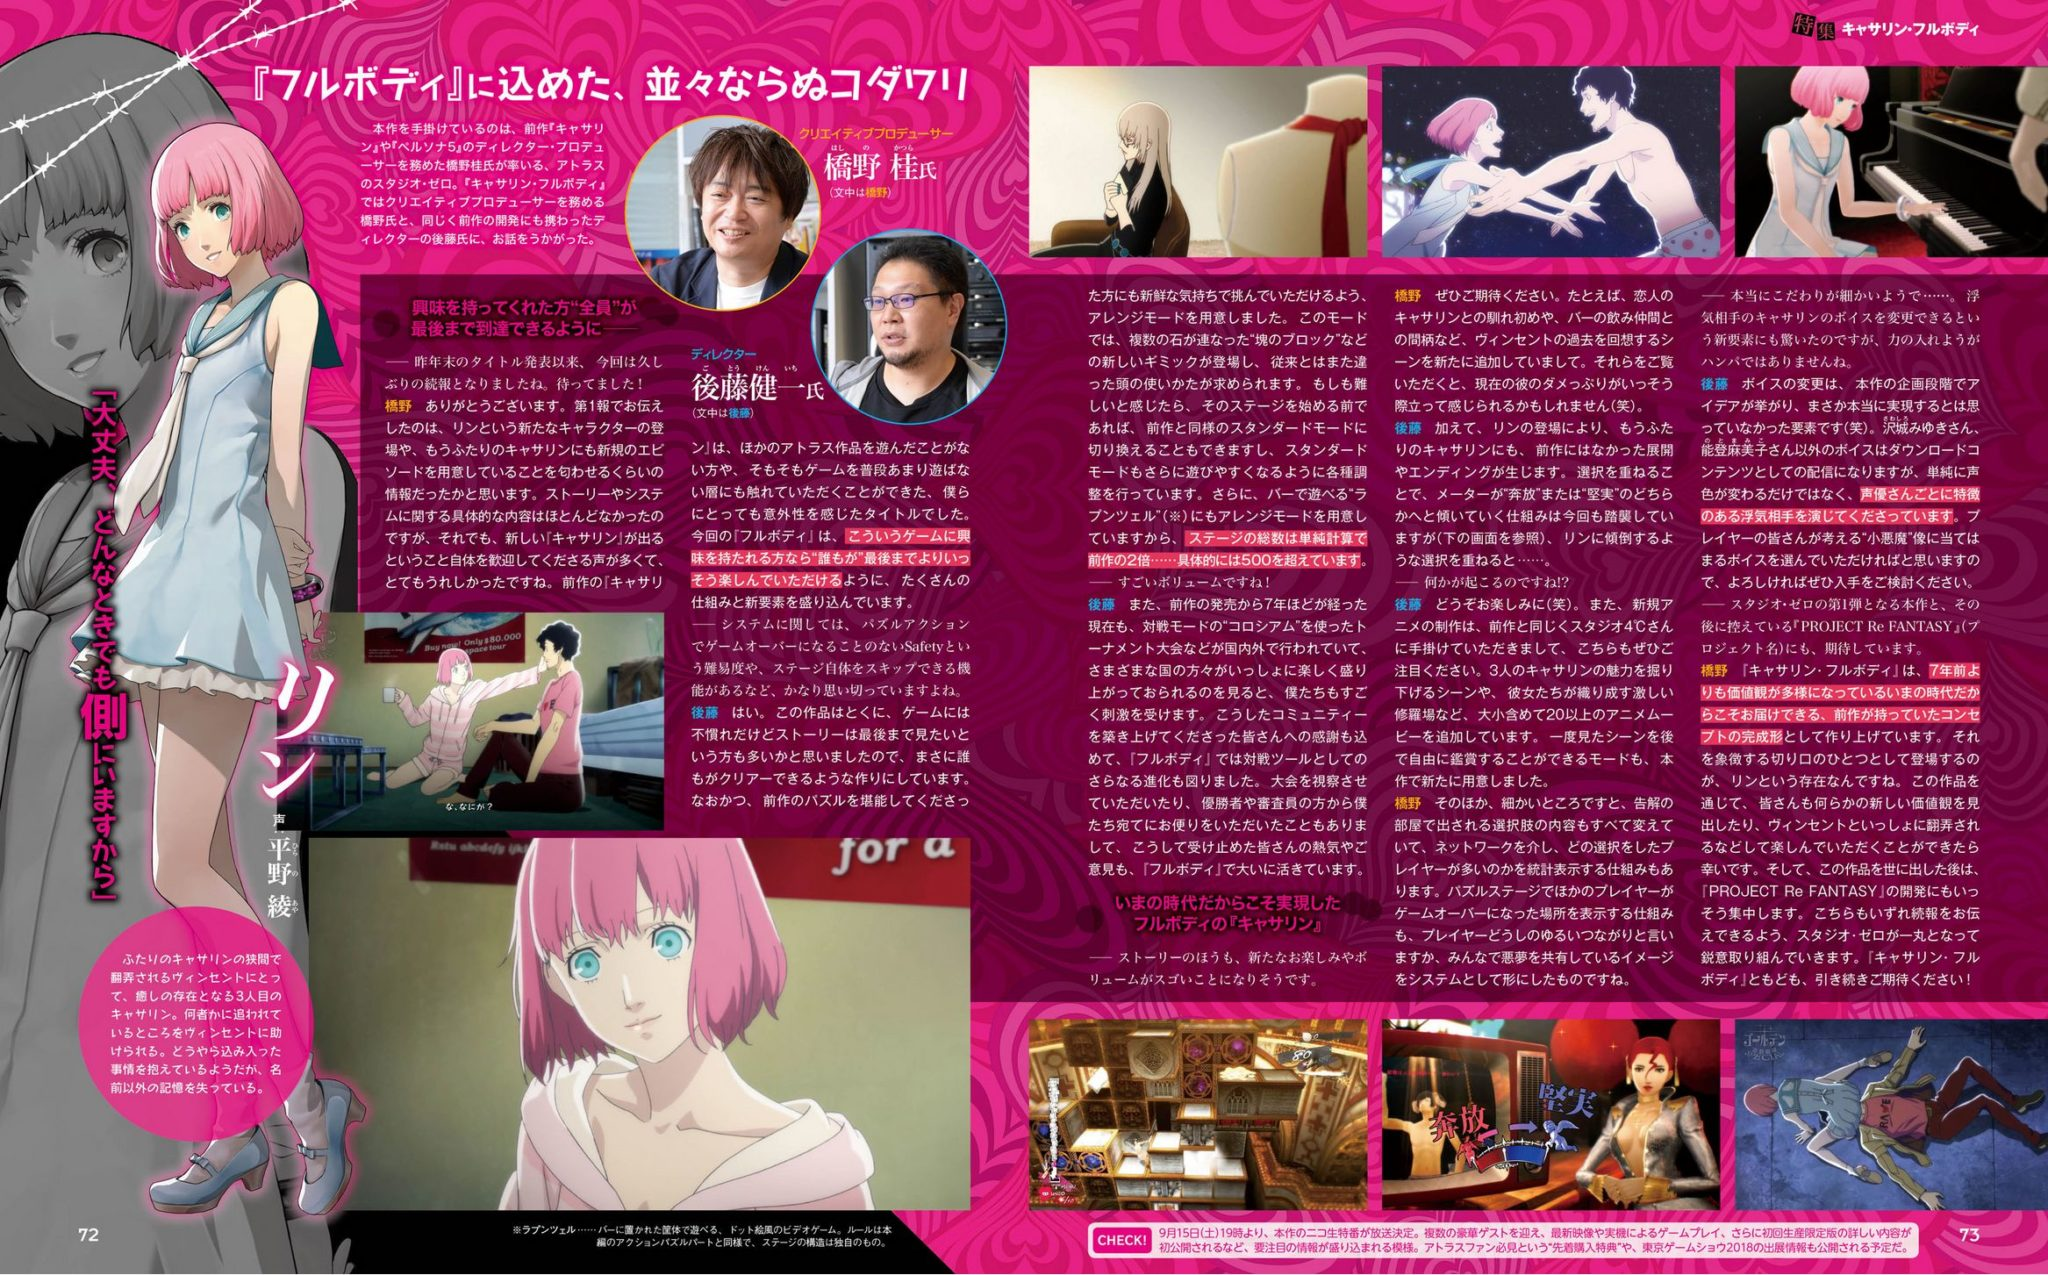 Catherine Full Body Famitsu 1554 Scan